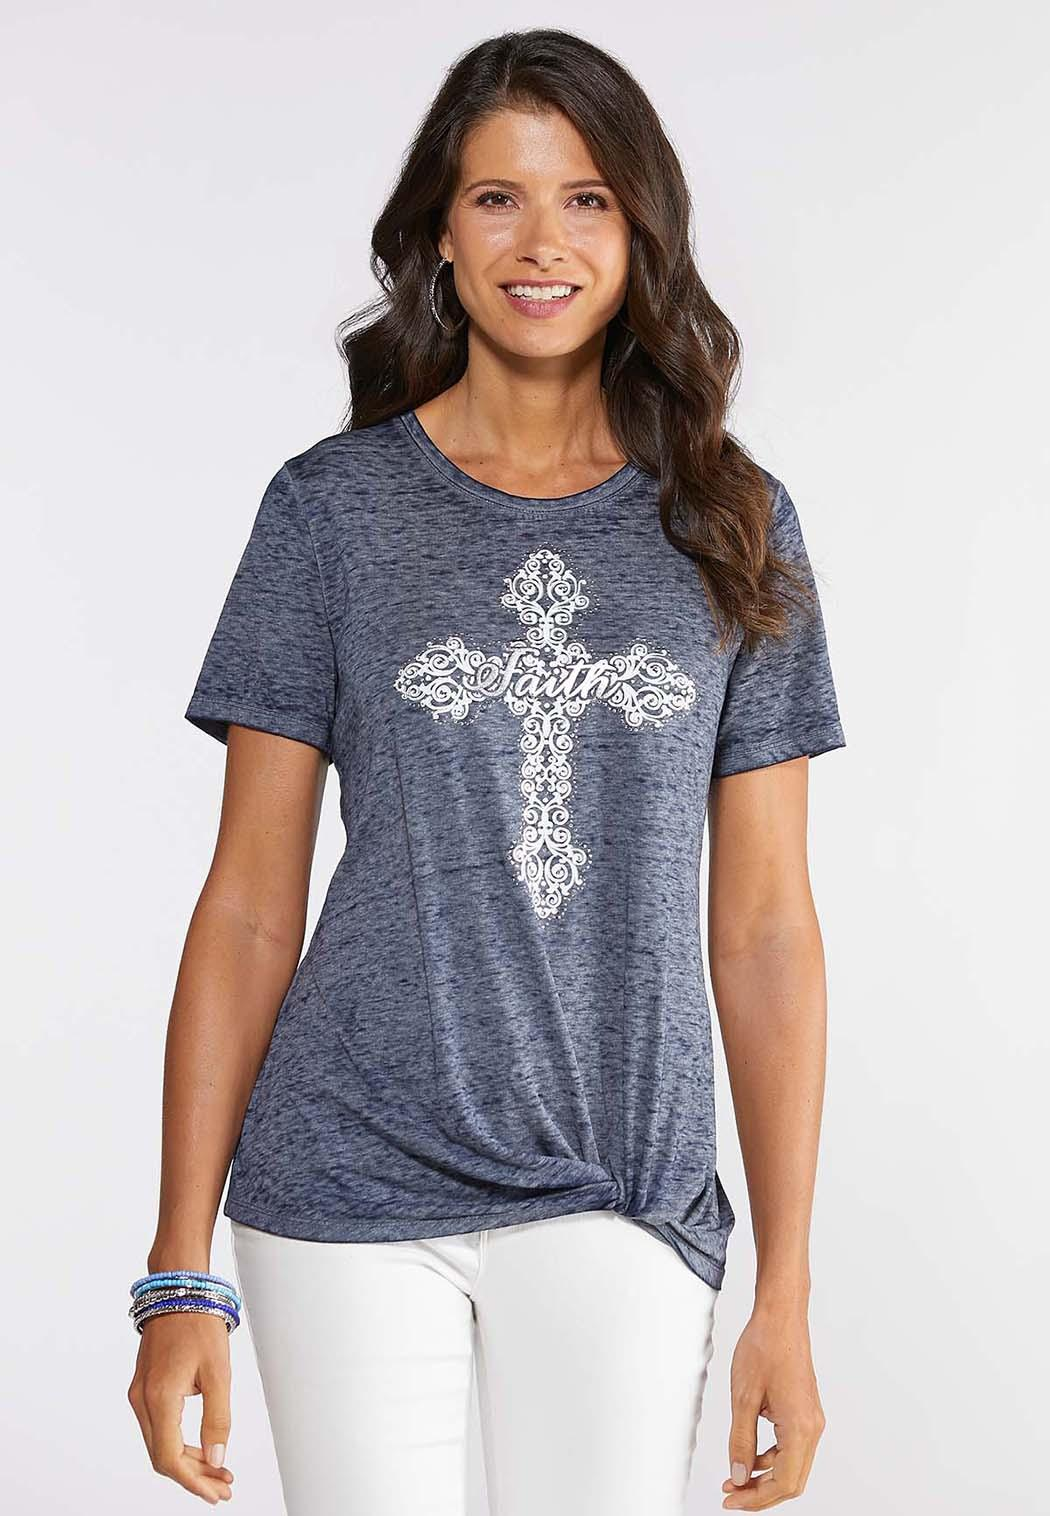 b559036a3 Women's Graphic Tees